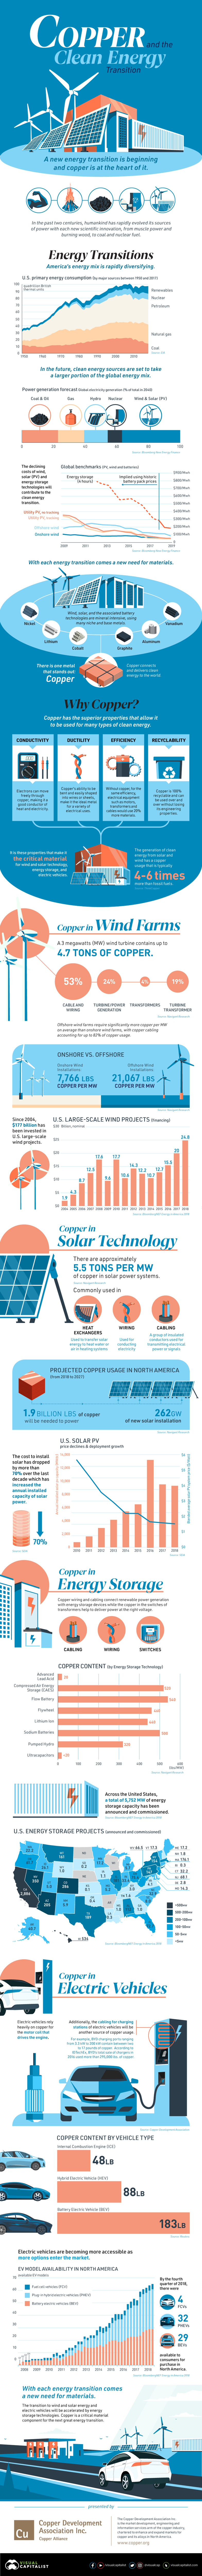 Copper and the Clean Energy Transition